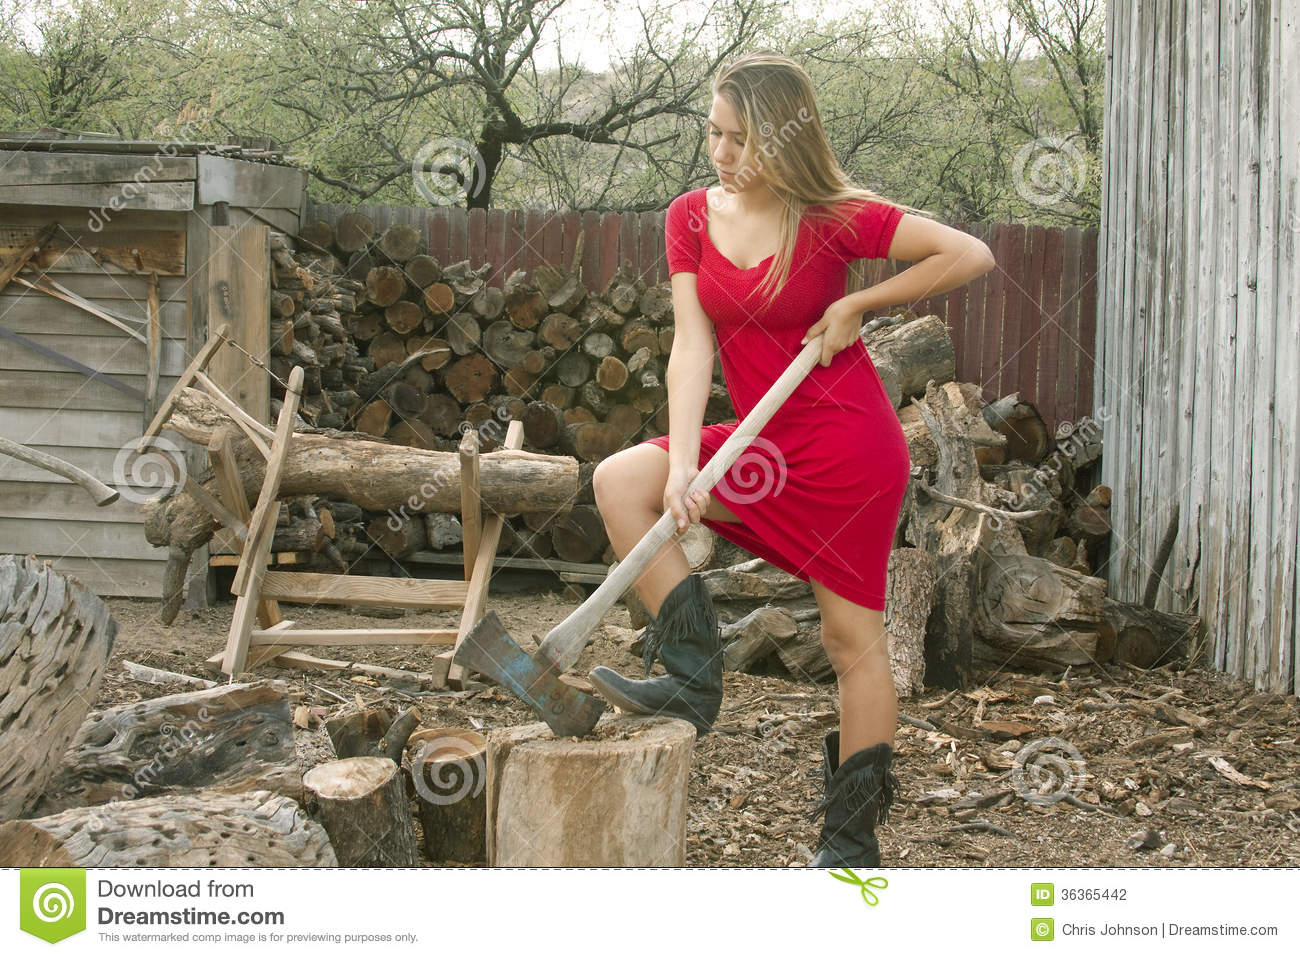 Firewood Shed Plans as well Land Rover Defender Photo History as well 2597086032 further Movements Sankhya 2 further Guild House Rehabilitation. on shed fire